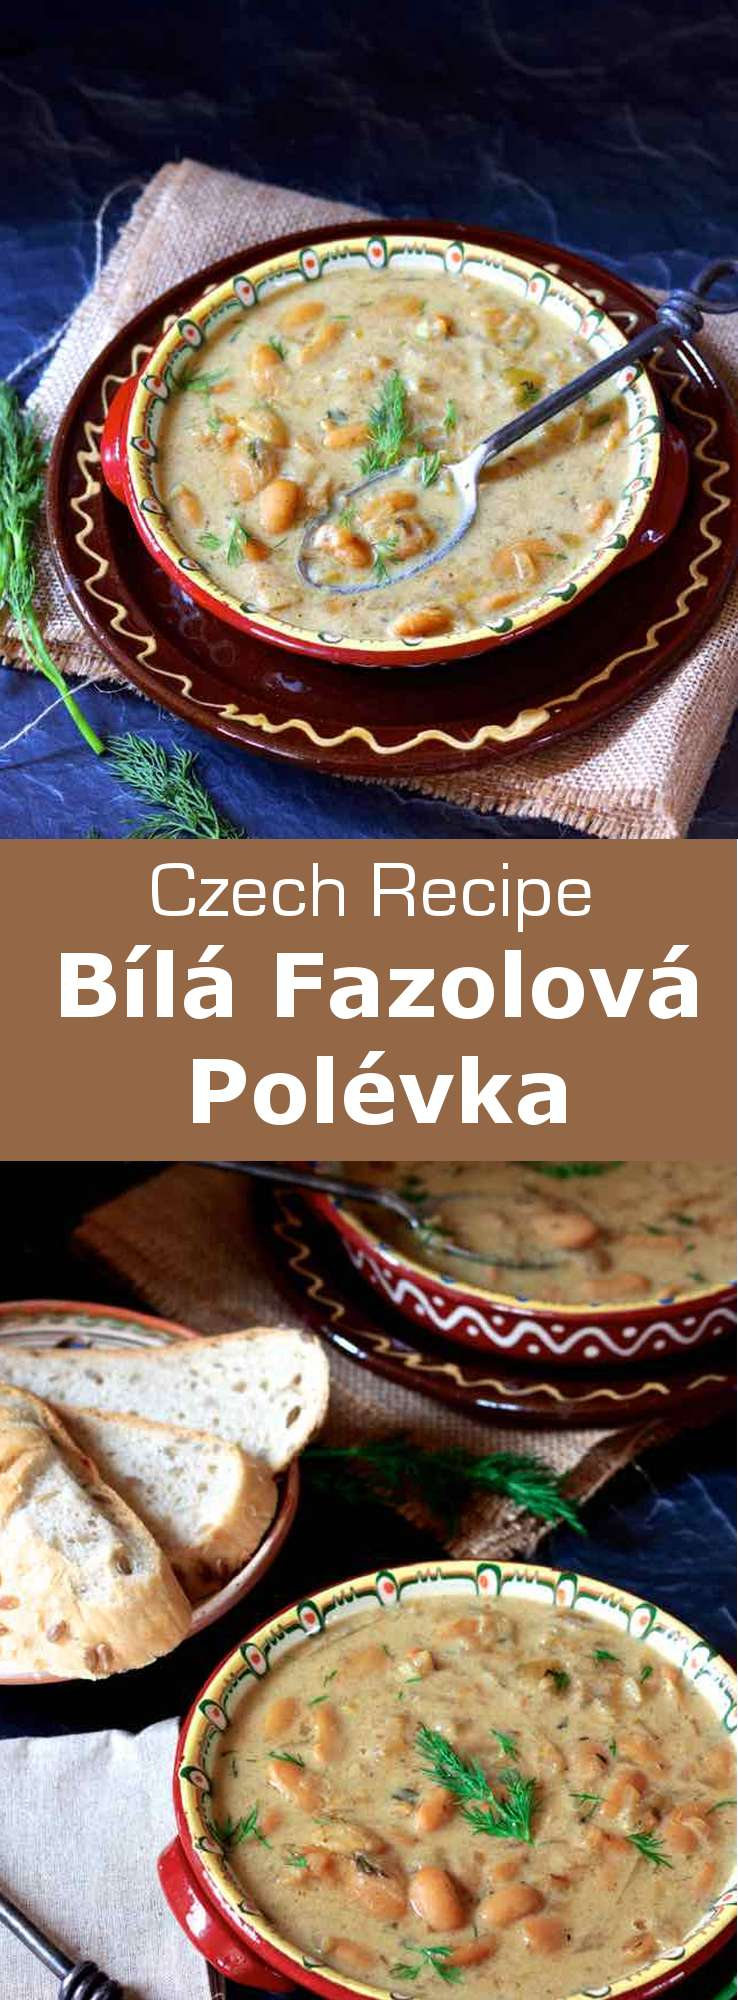 Frugal, filling, and deliciously hearty, this bílá fazolová polévka (white bean soup) is one of the culinary mainstays of the Czech Republic. #CzechRepublic #CzechCuisine #CzechRecipe #Soup #CzechSoup #Vegetarian #VegetarianSoup #WorldCuisine #196flavors